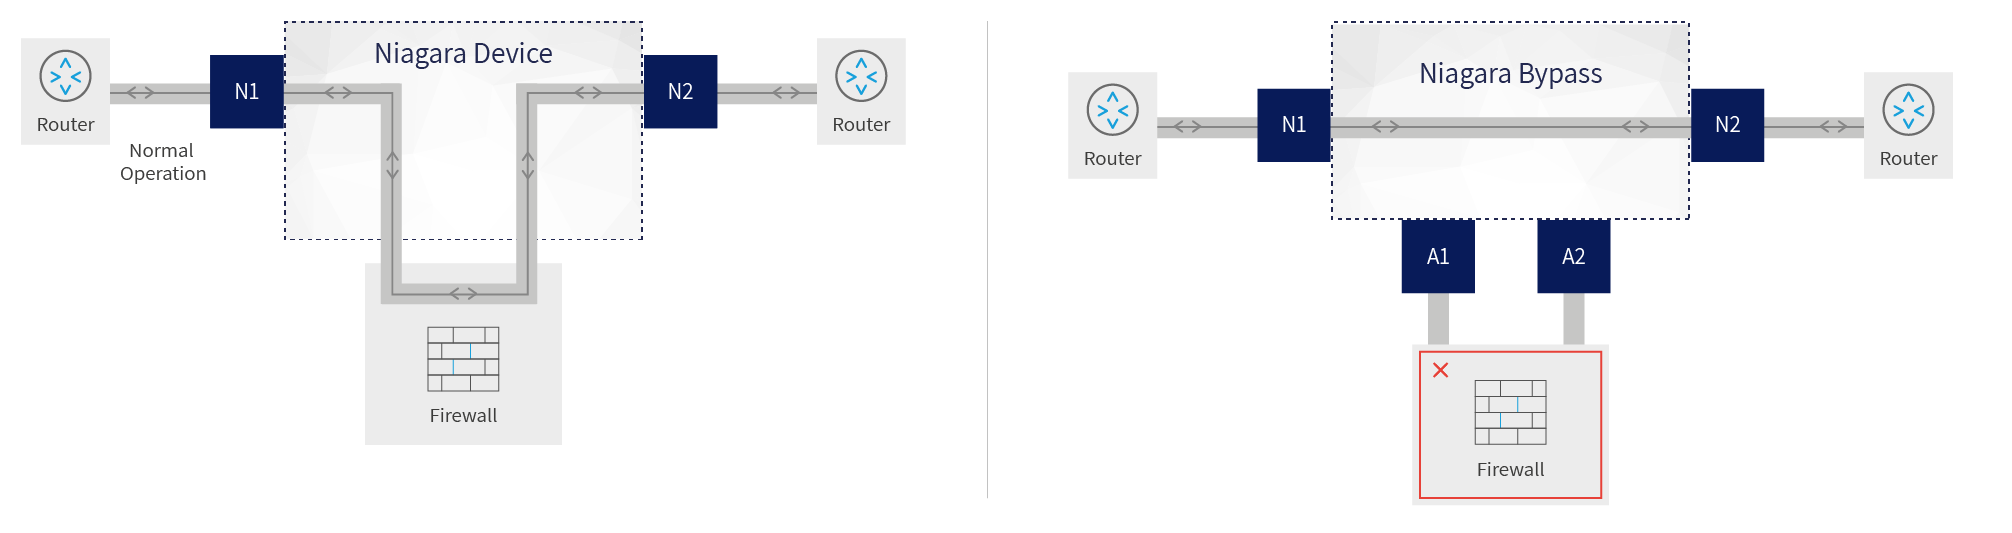 Prevent network failure with bypasses